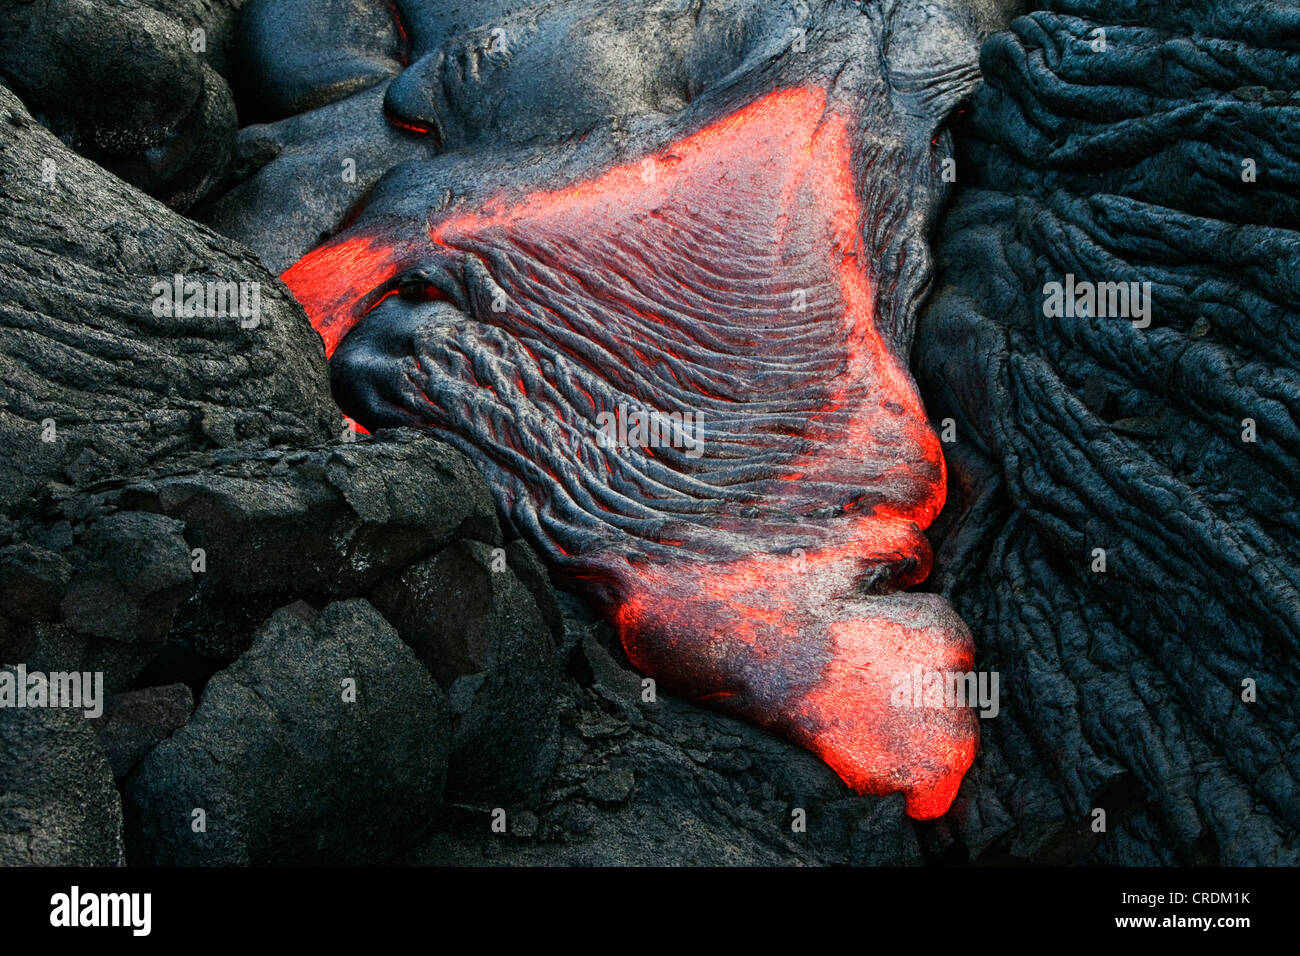 Molten pahoehoe type lava flowing from a crack in the East Rift Zone towards the sea, lava field of the Kilauea - Stock Image